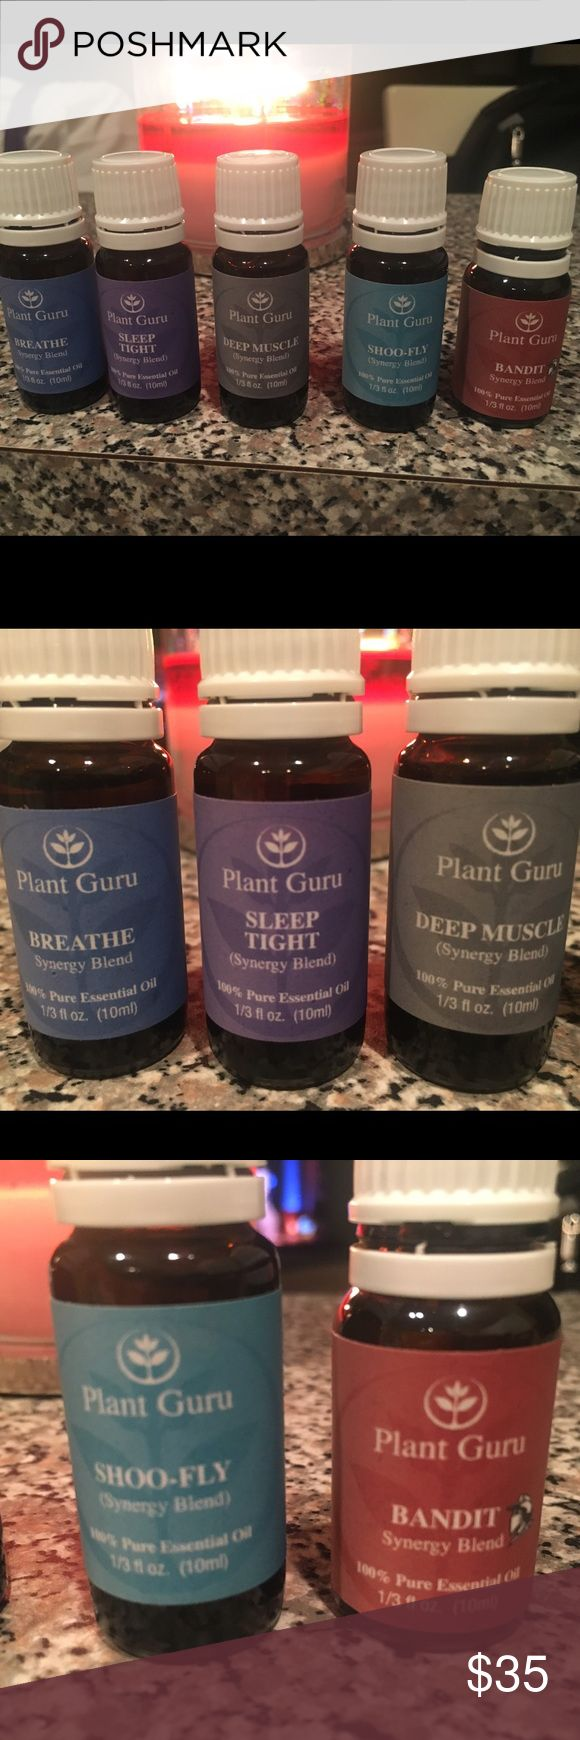 Plant Guru 100% Essential Oils 5 different essential oil blends, all seals have been broken but not a single drop has been used, just smelled them and never ended up using them. Each are 10ml. One is a respiratory blend to help you breathe (similar to Doterra Breathe), Sleep tight mimics Doterra Serenity, also oils to naturally keep bugs and mosquitos away, a tense muscle relaxer, and Bandit which is a blend of cloves and other oils great for diffusing! Price firm. Plant Guru Other